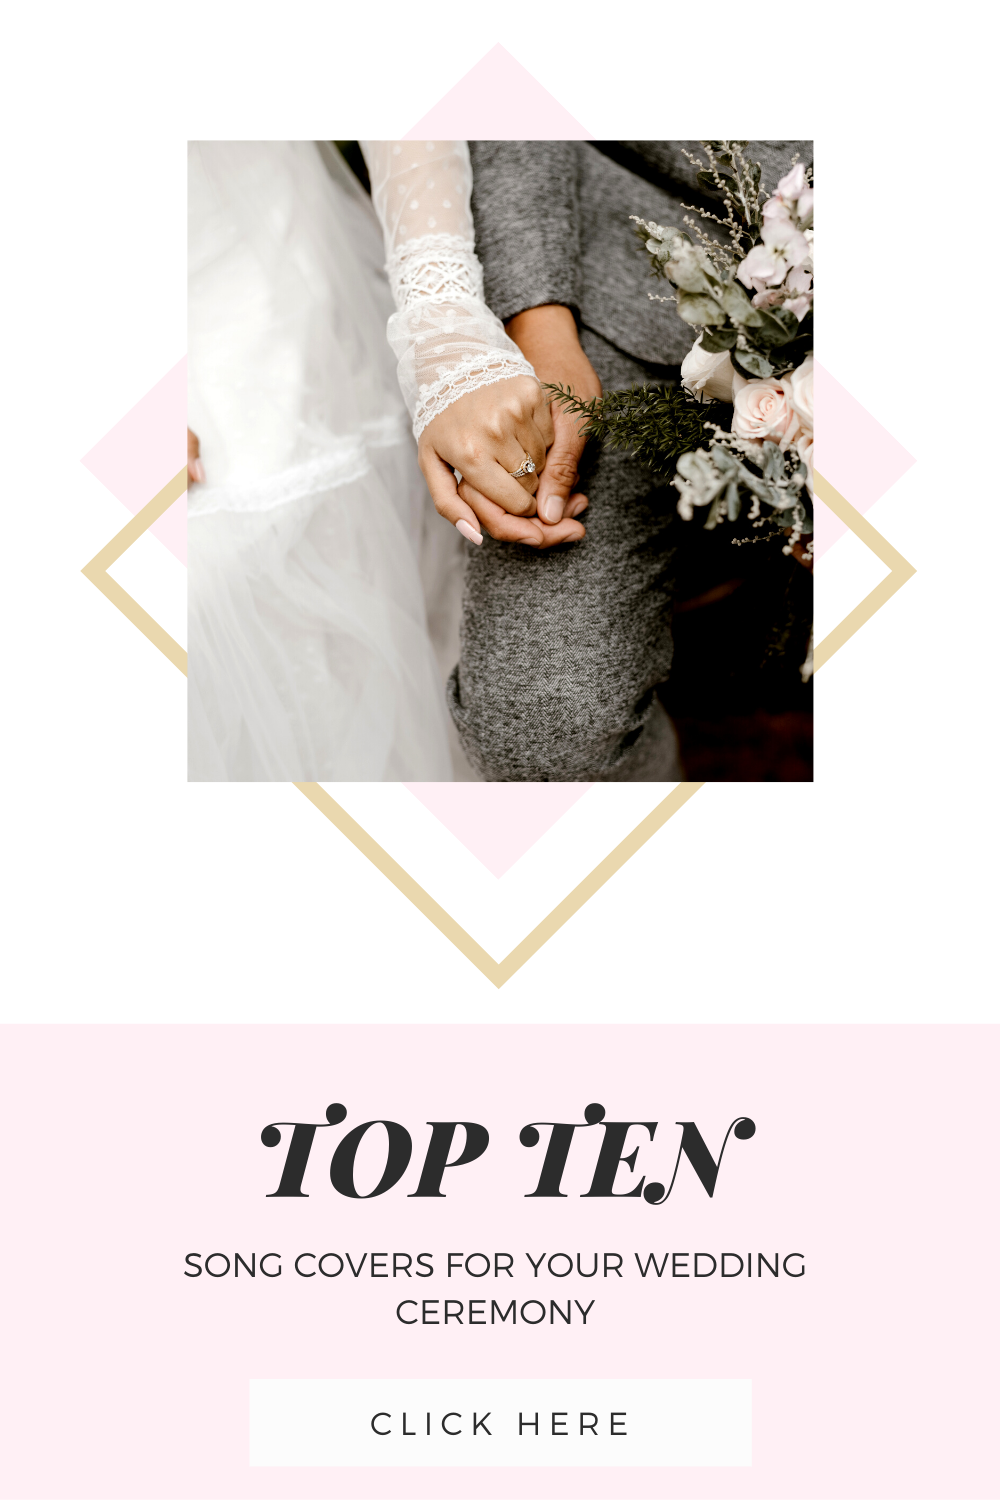 TOP TEN Song Covers for Your Wedding Ceremony in 2020